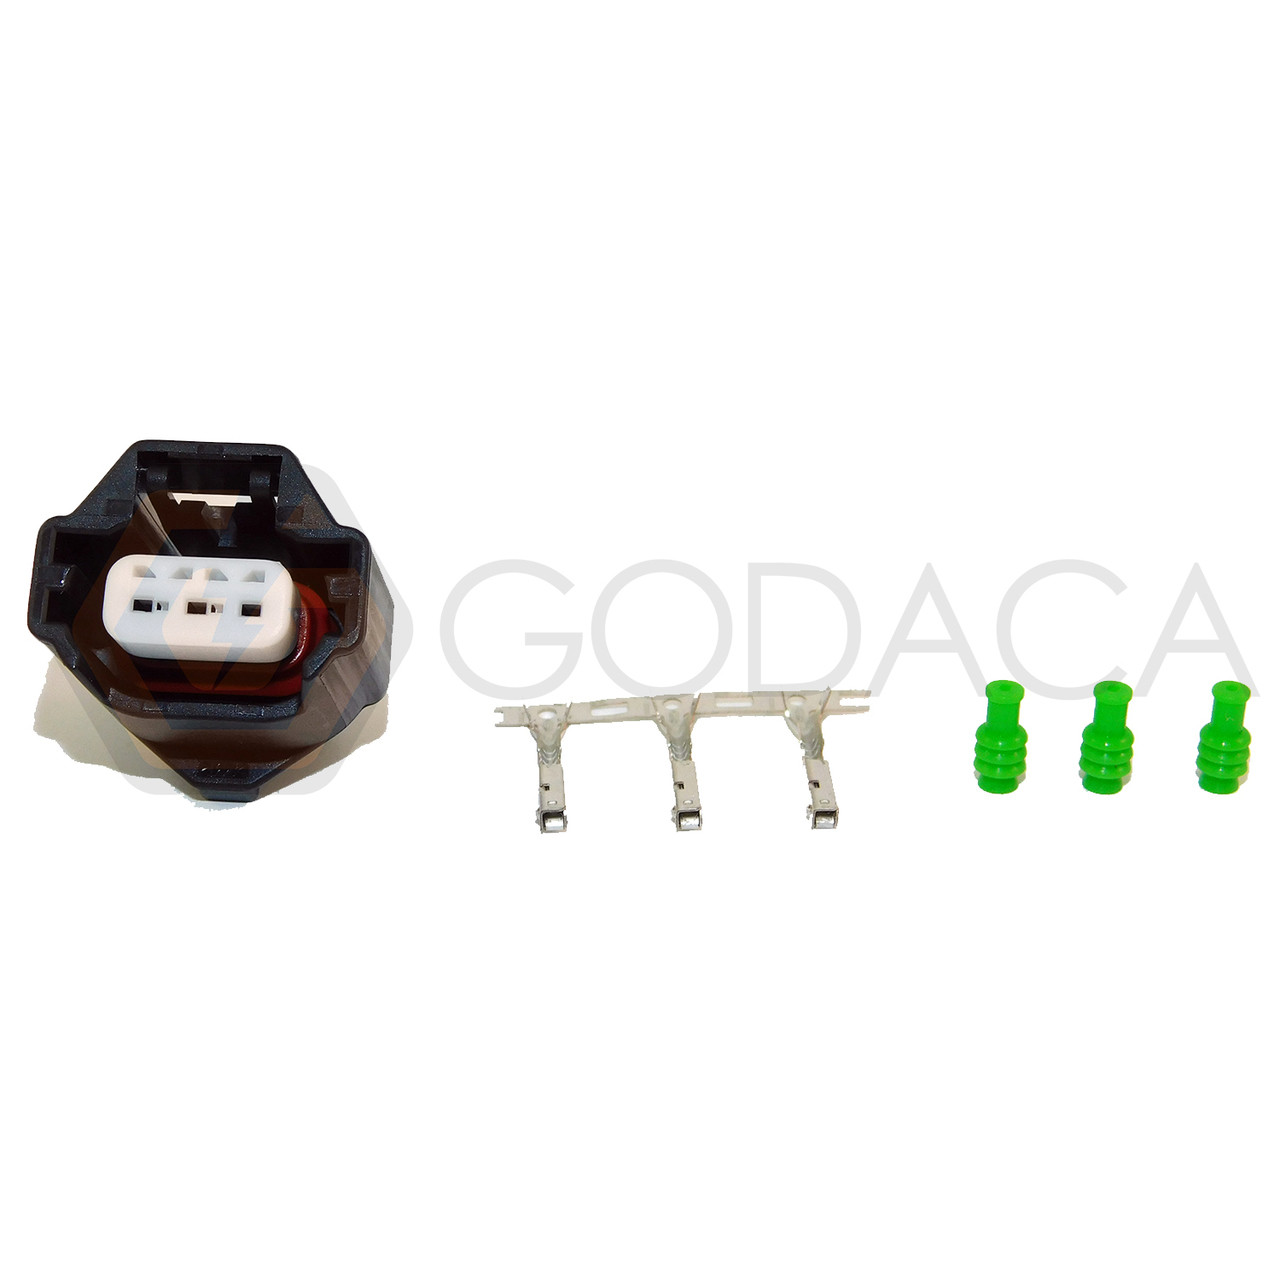 hight resolution of 1x connector 3 way 3 pin for camshaft position sensor cps cps0003 w out wire godaca llc